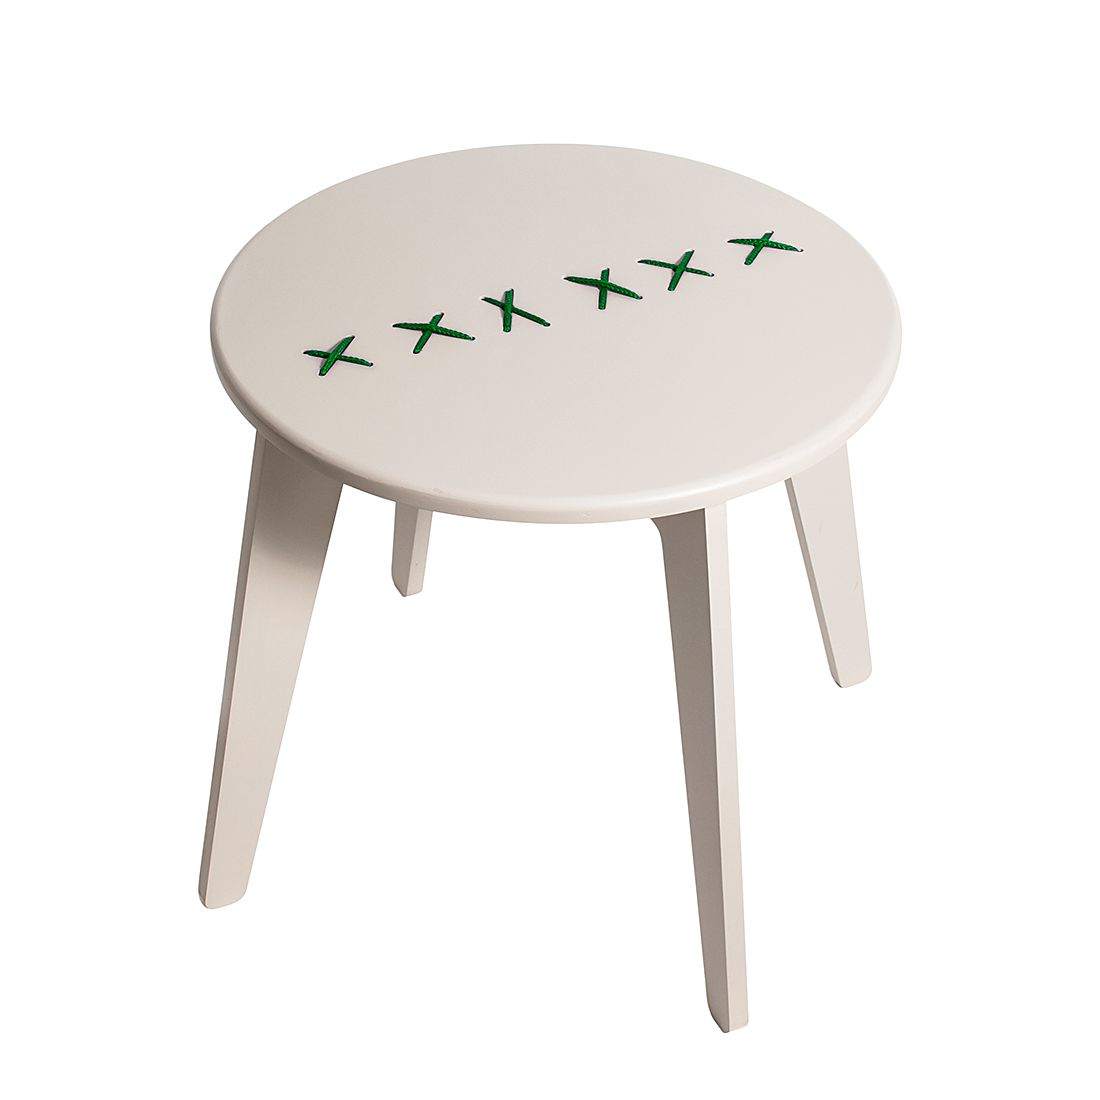 Table basse Stitched - Gris clair / Vert menthe, Metrocuadro Design